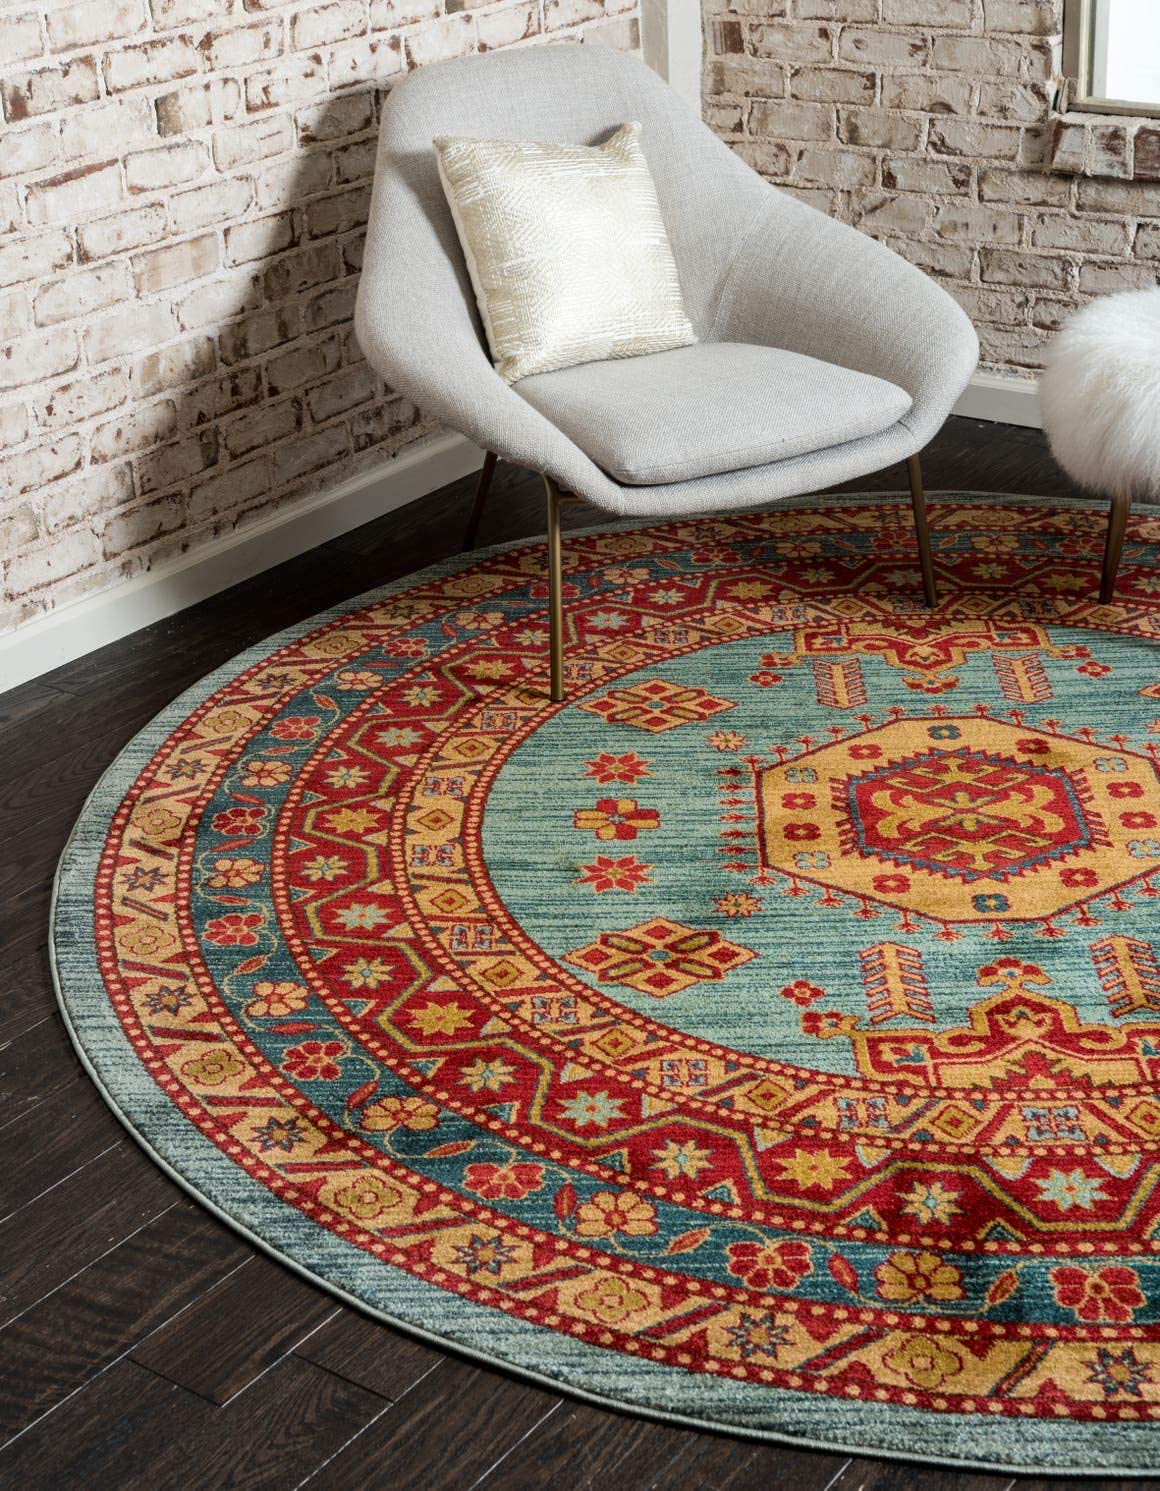 Unique Loom Sahand Collection Traditional Geometric Classic Light Blue Round Rug 8 0 x 8 0